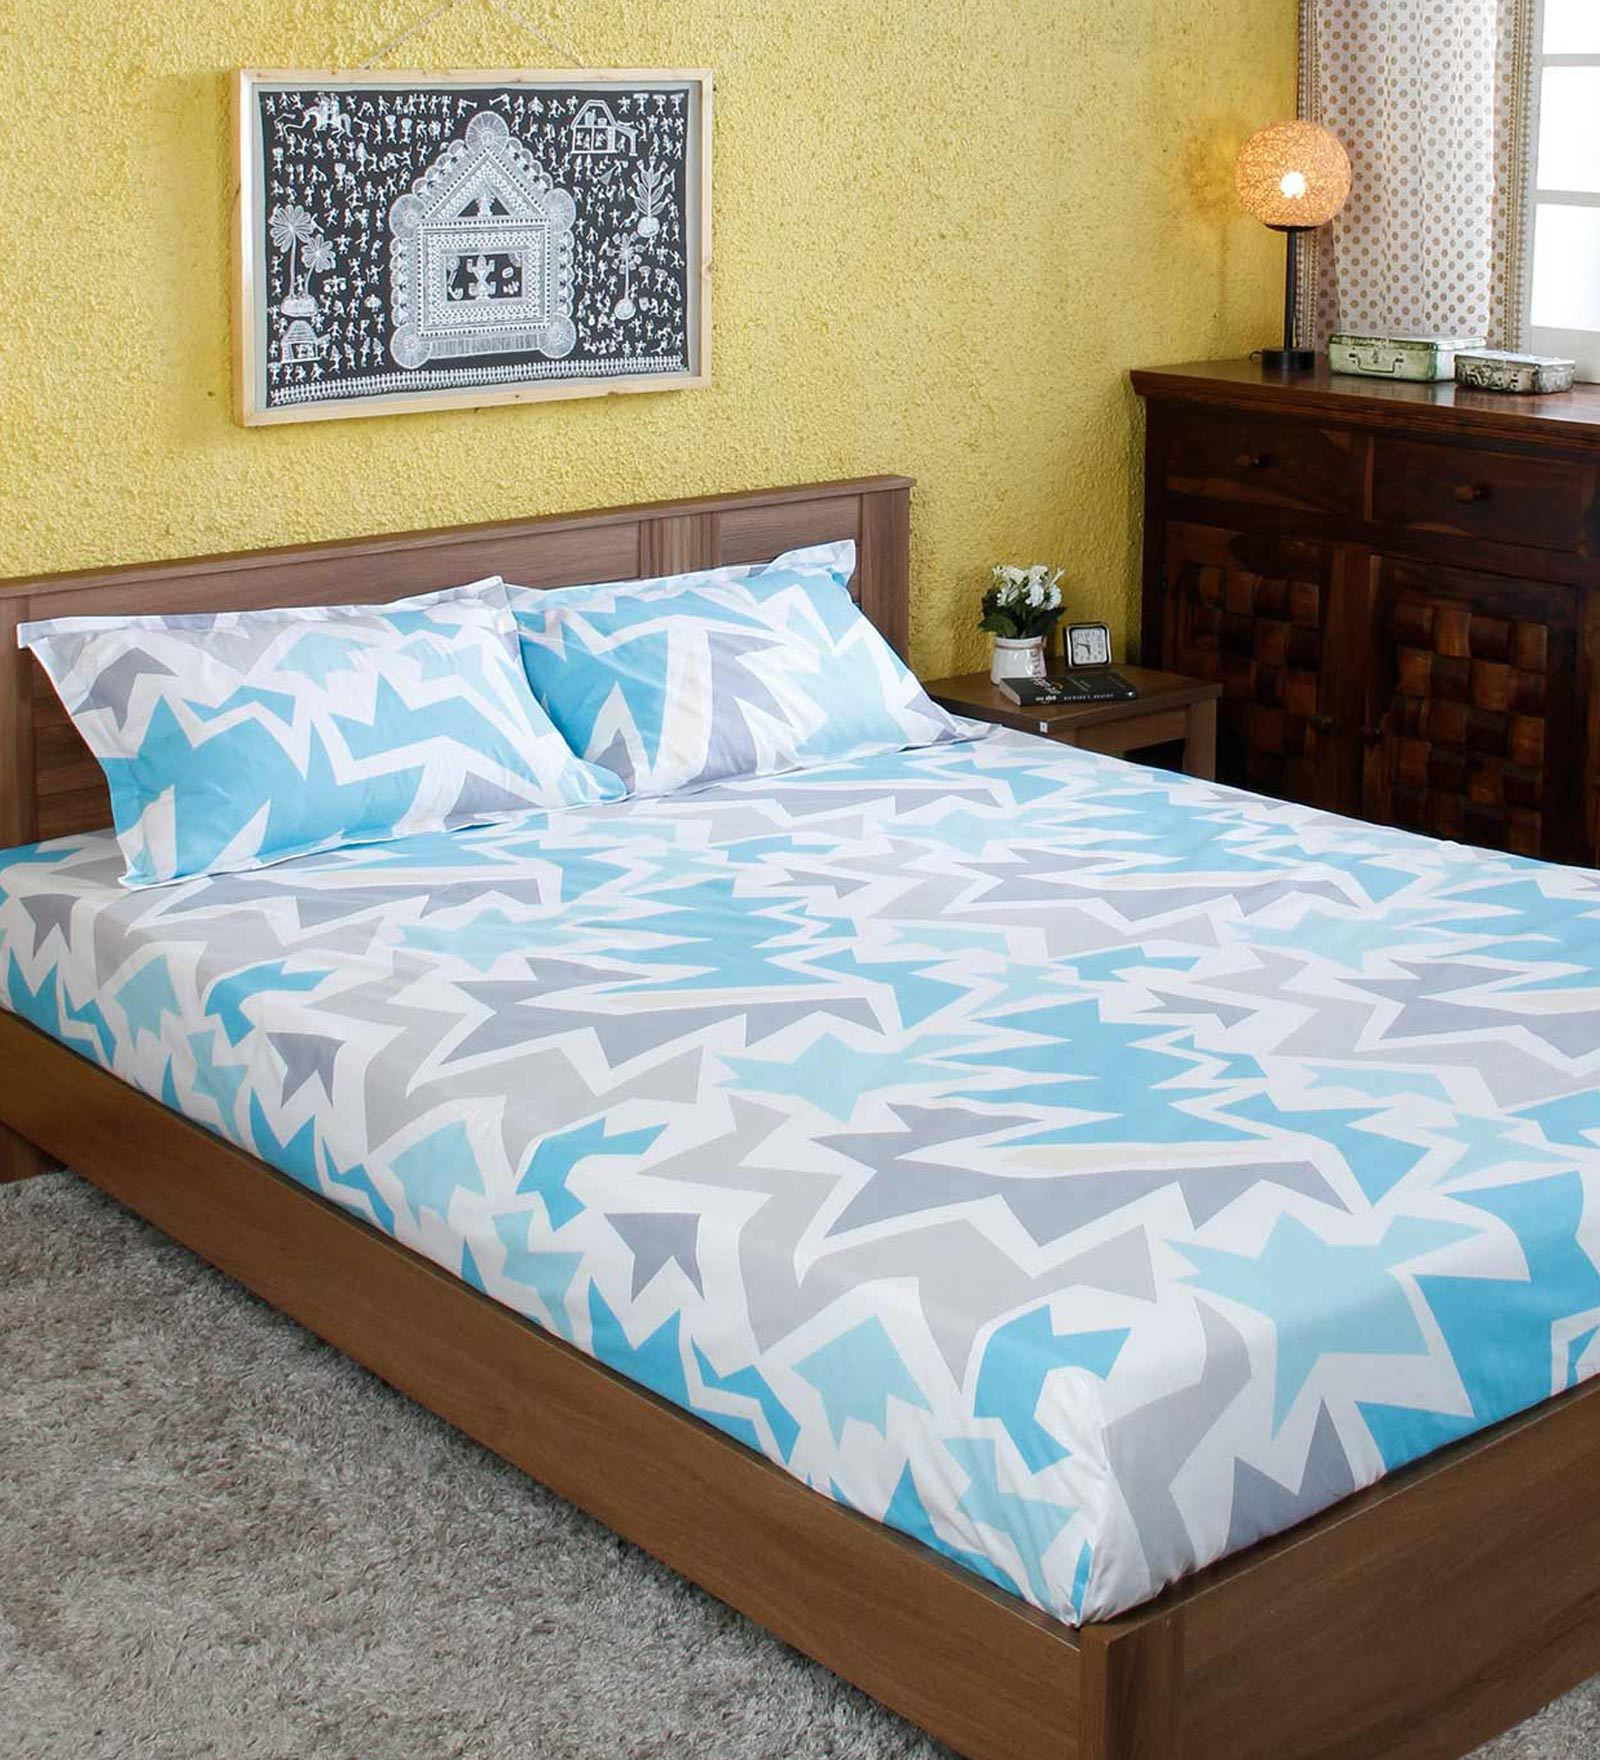 Abstract Pattern 160 Tc Cotton Double Size Bedsheet With 2 Pillow Covers By Ahmedabad Cotton Buy Online In Dominica At Dominica Desertcart Com Productid 144810674